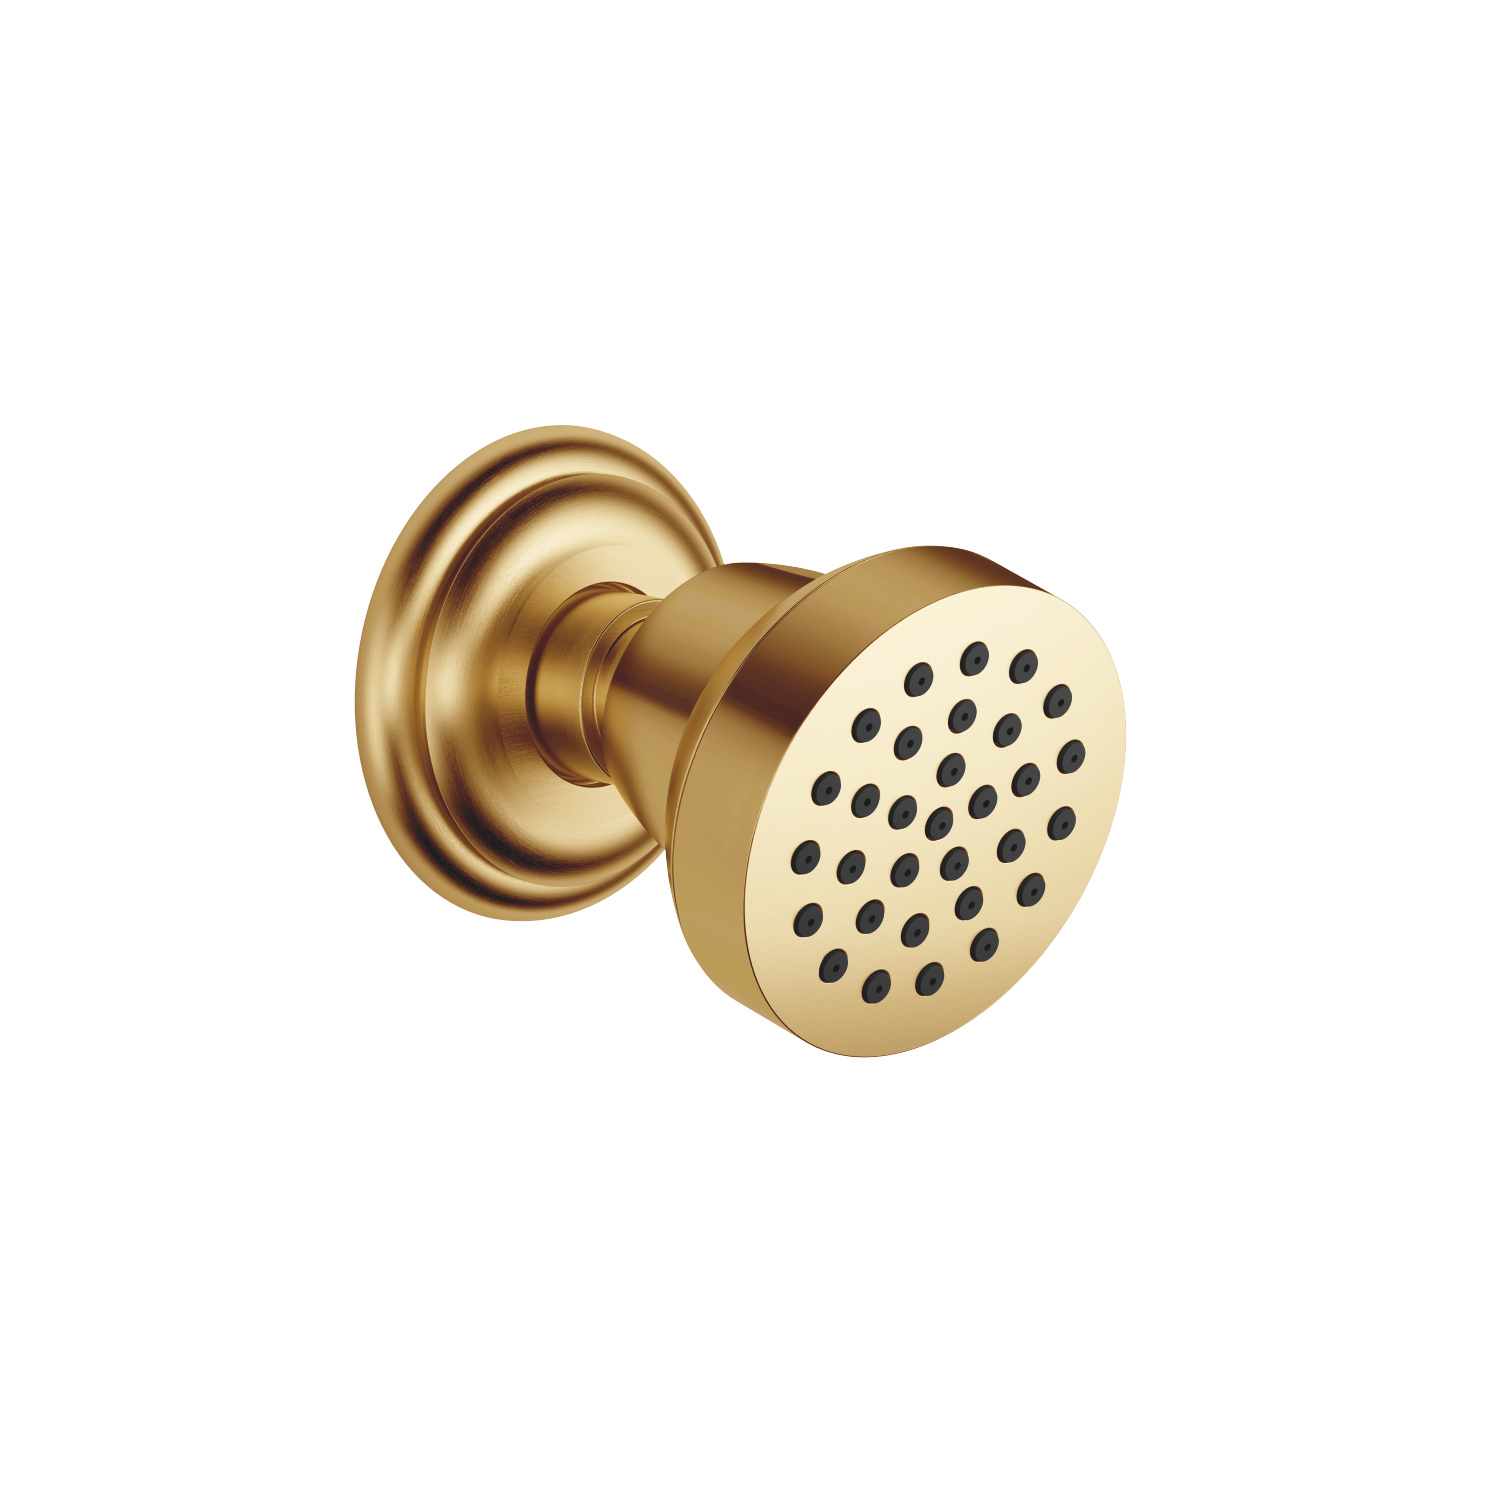 Body spray without volume control - Brushed Durabrass